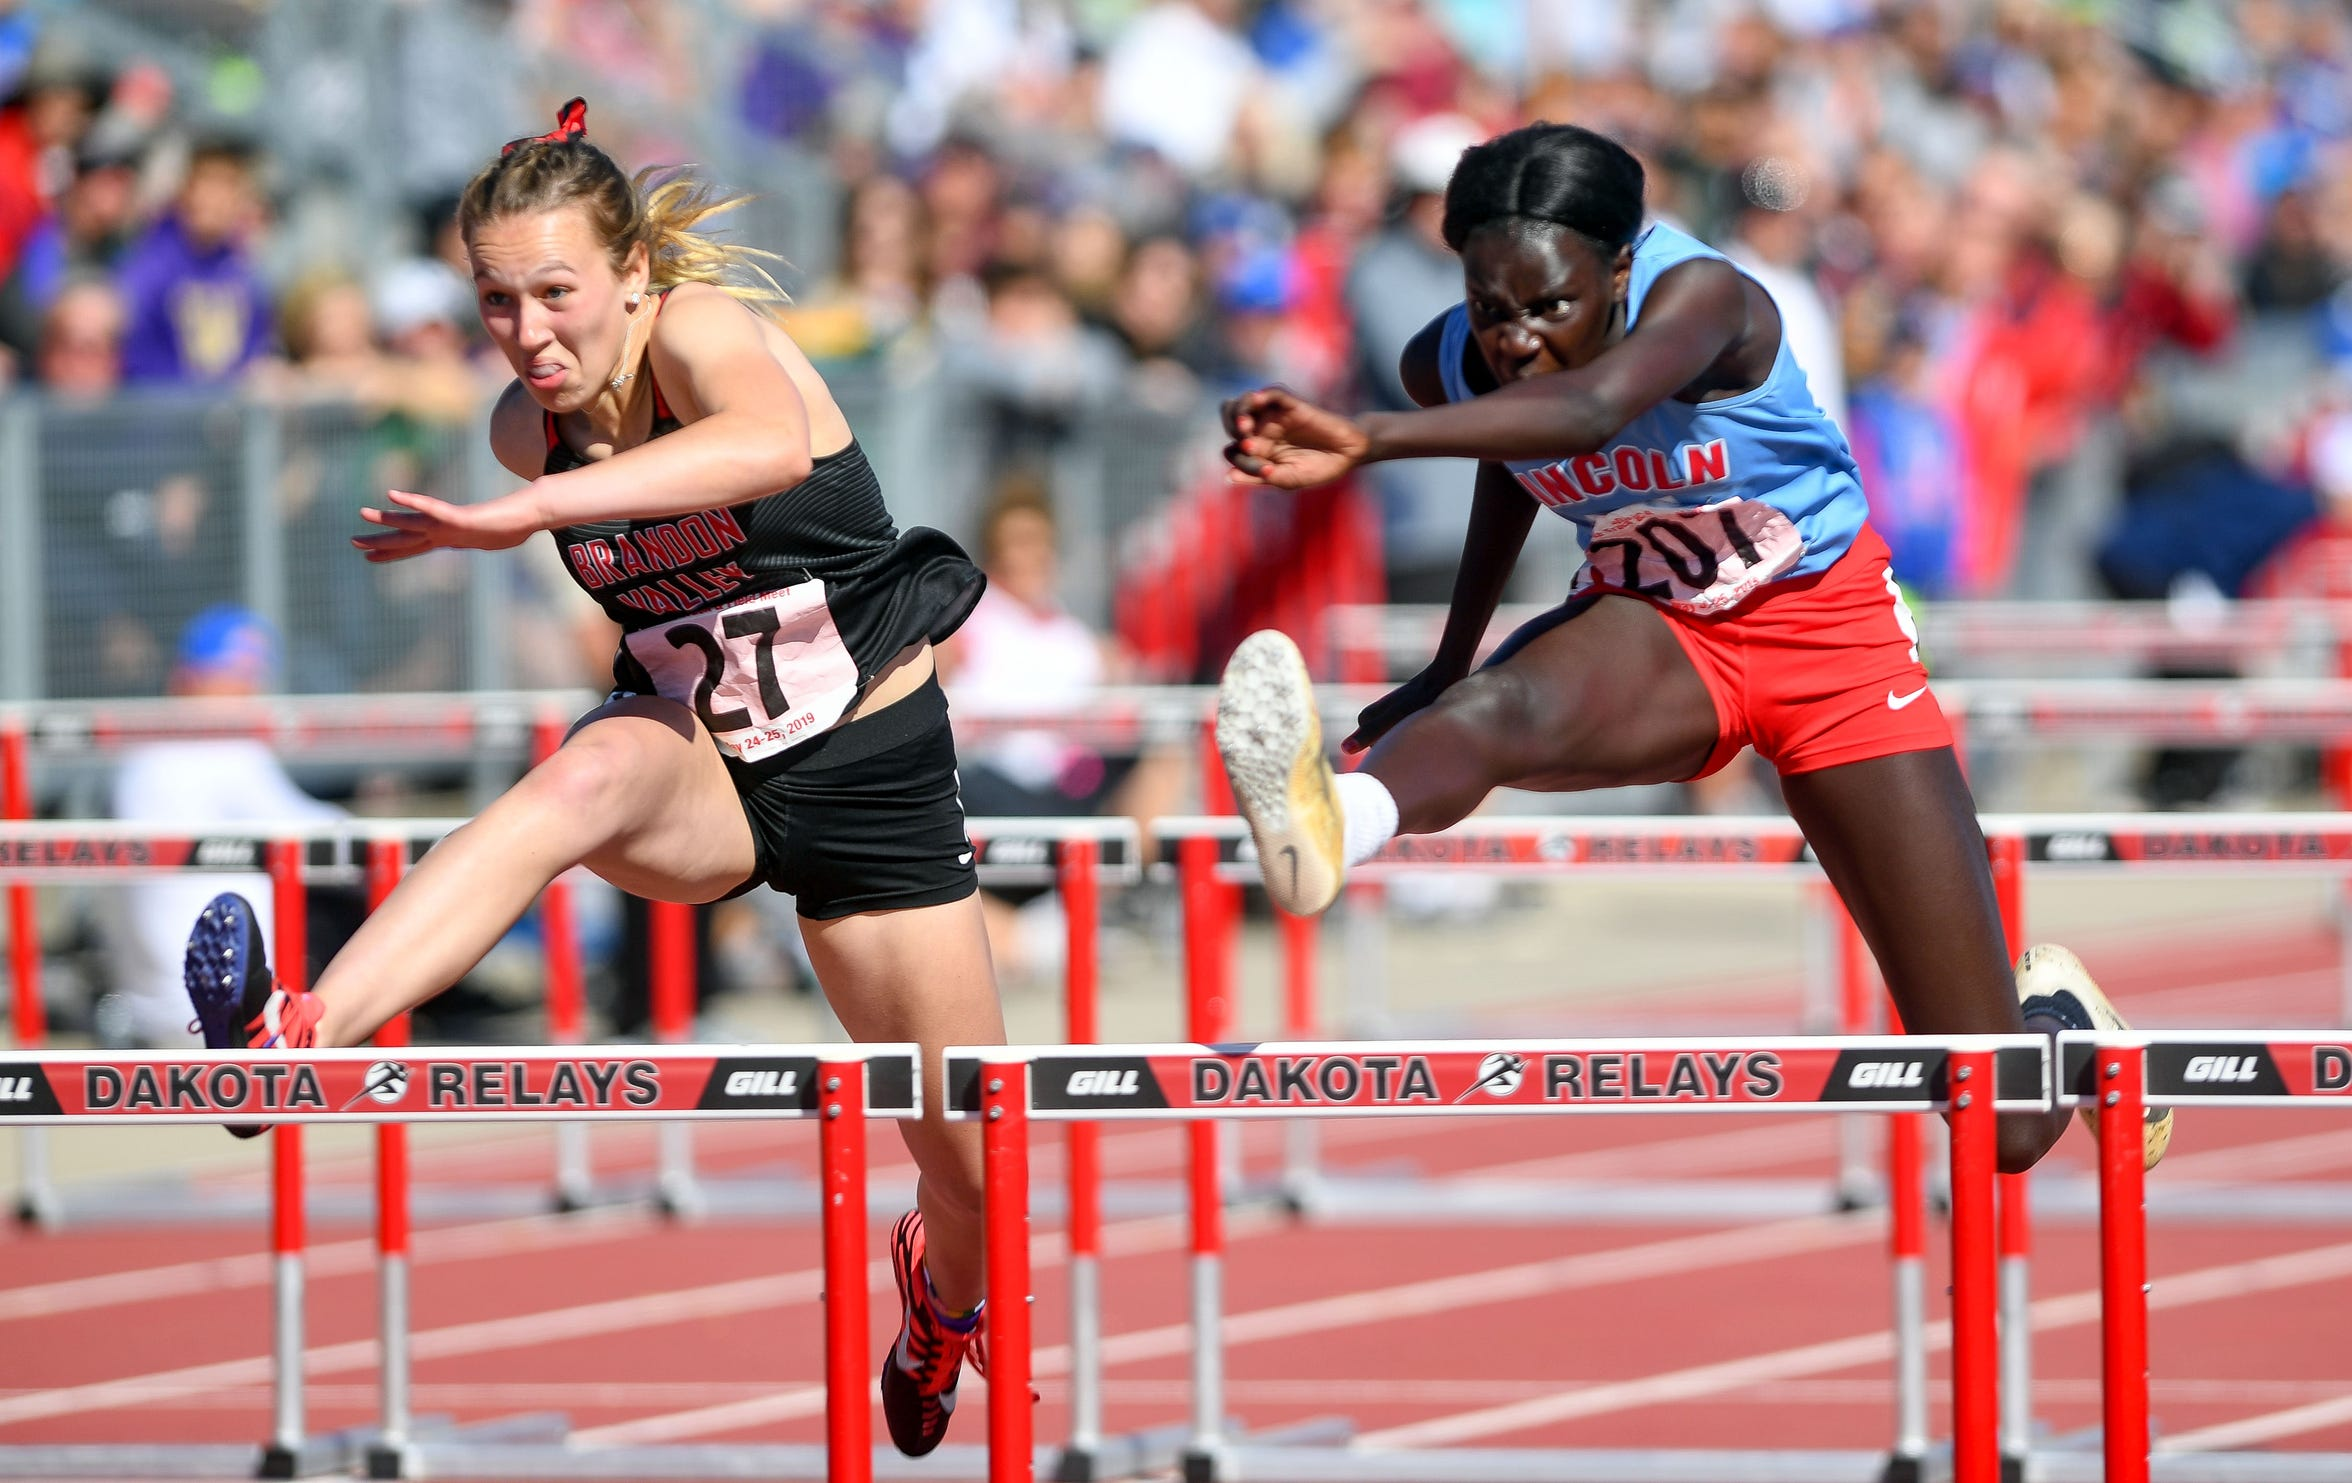 Brielle Dixon of Brandon Valley and Josephine Dal of Sioux Falls Lincoln leap over hurdles during the AA 100 meter hurdle race on the second day of the state high school track and field meet Saturday, May 25, 2019 at Howard Wood Field in Sioux Falls.